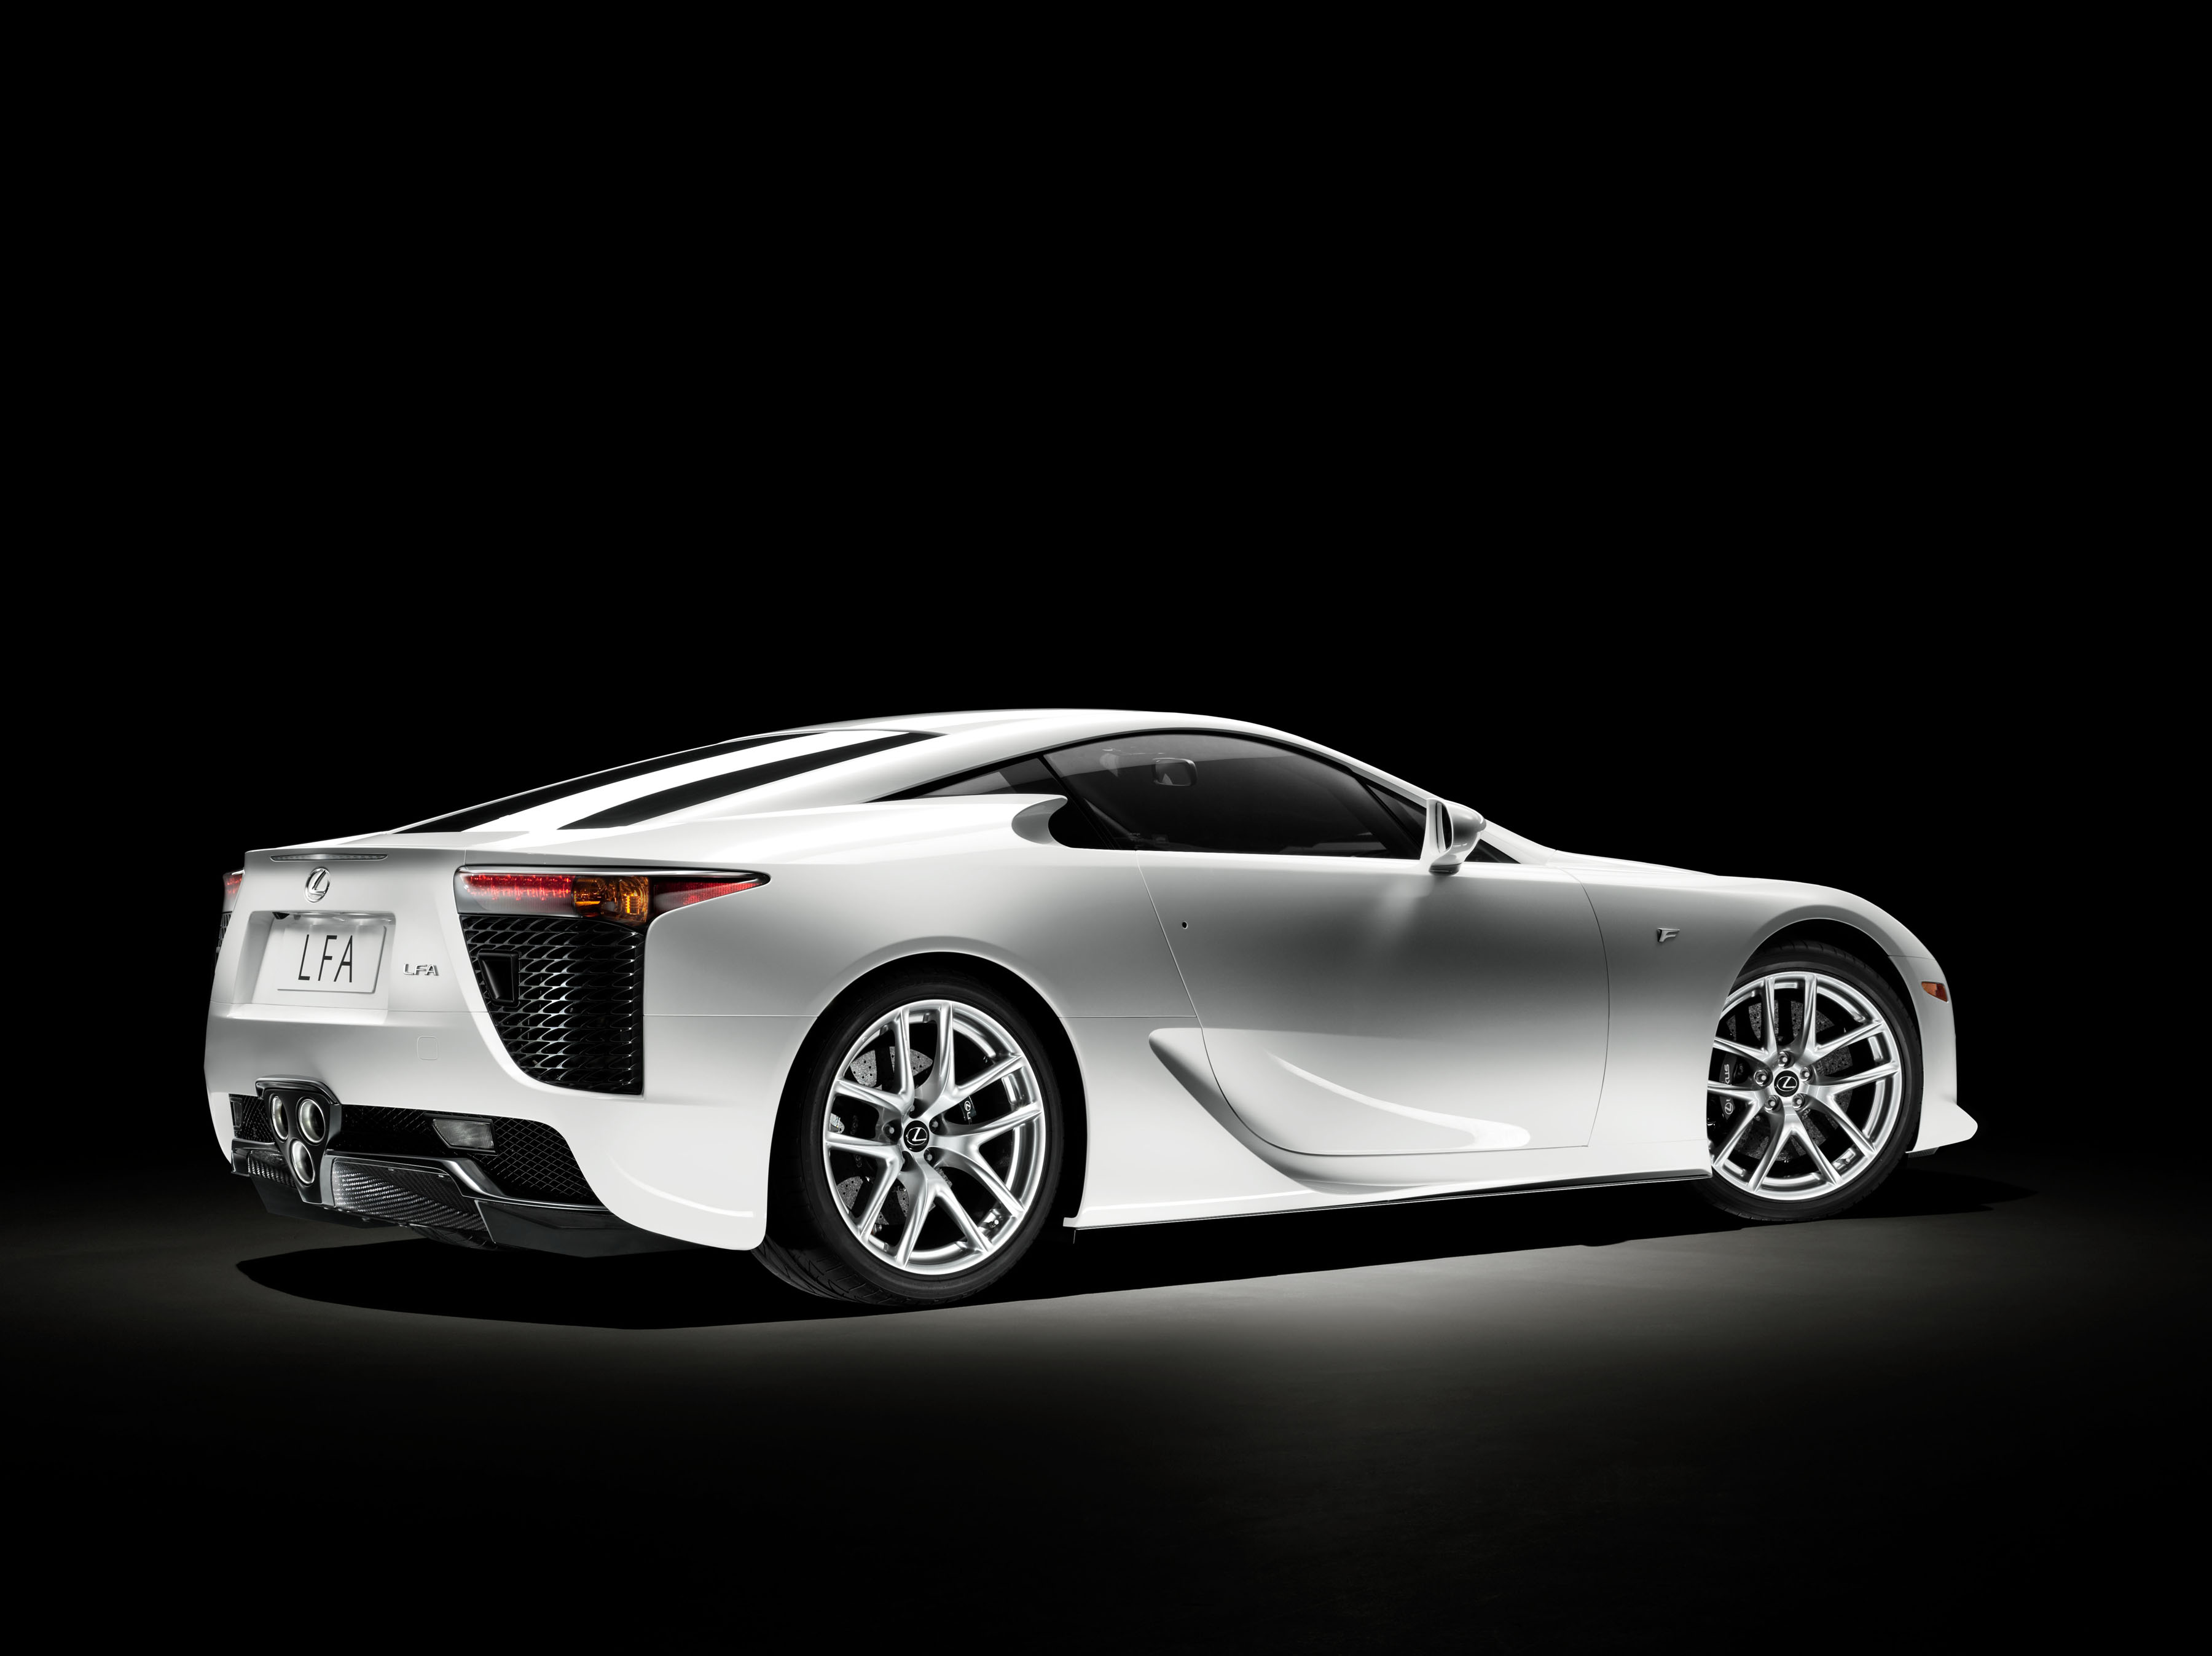 Update If It s Not the Lexus LFA What IS the Best Car Ever to